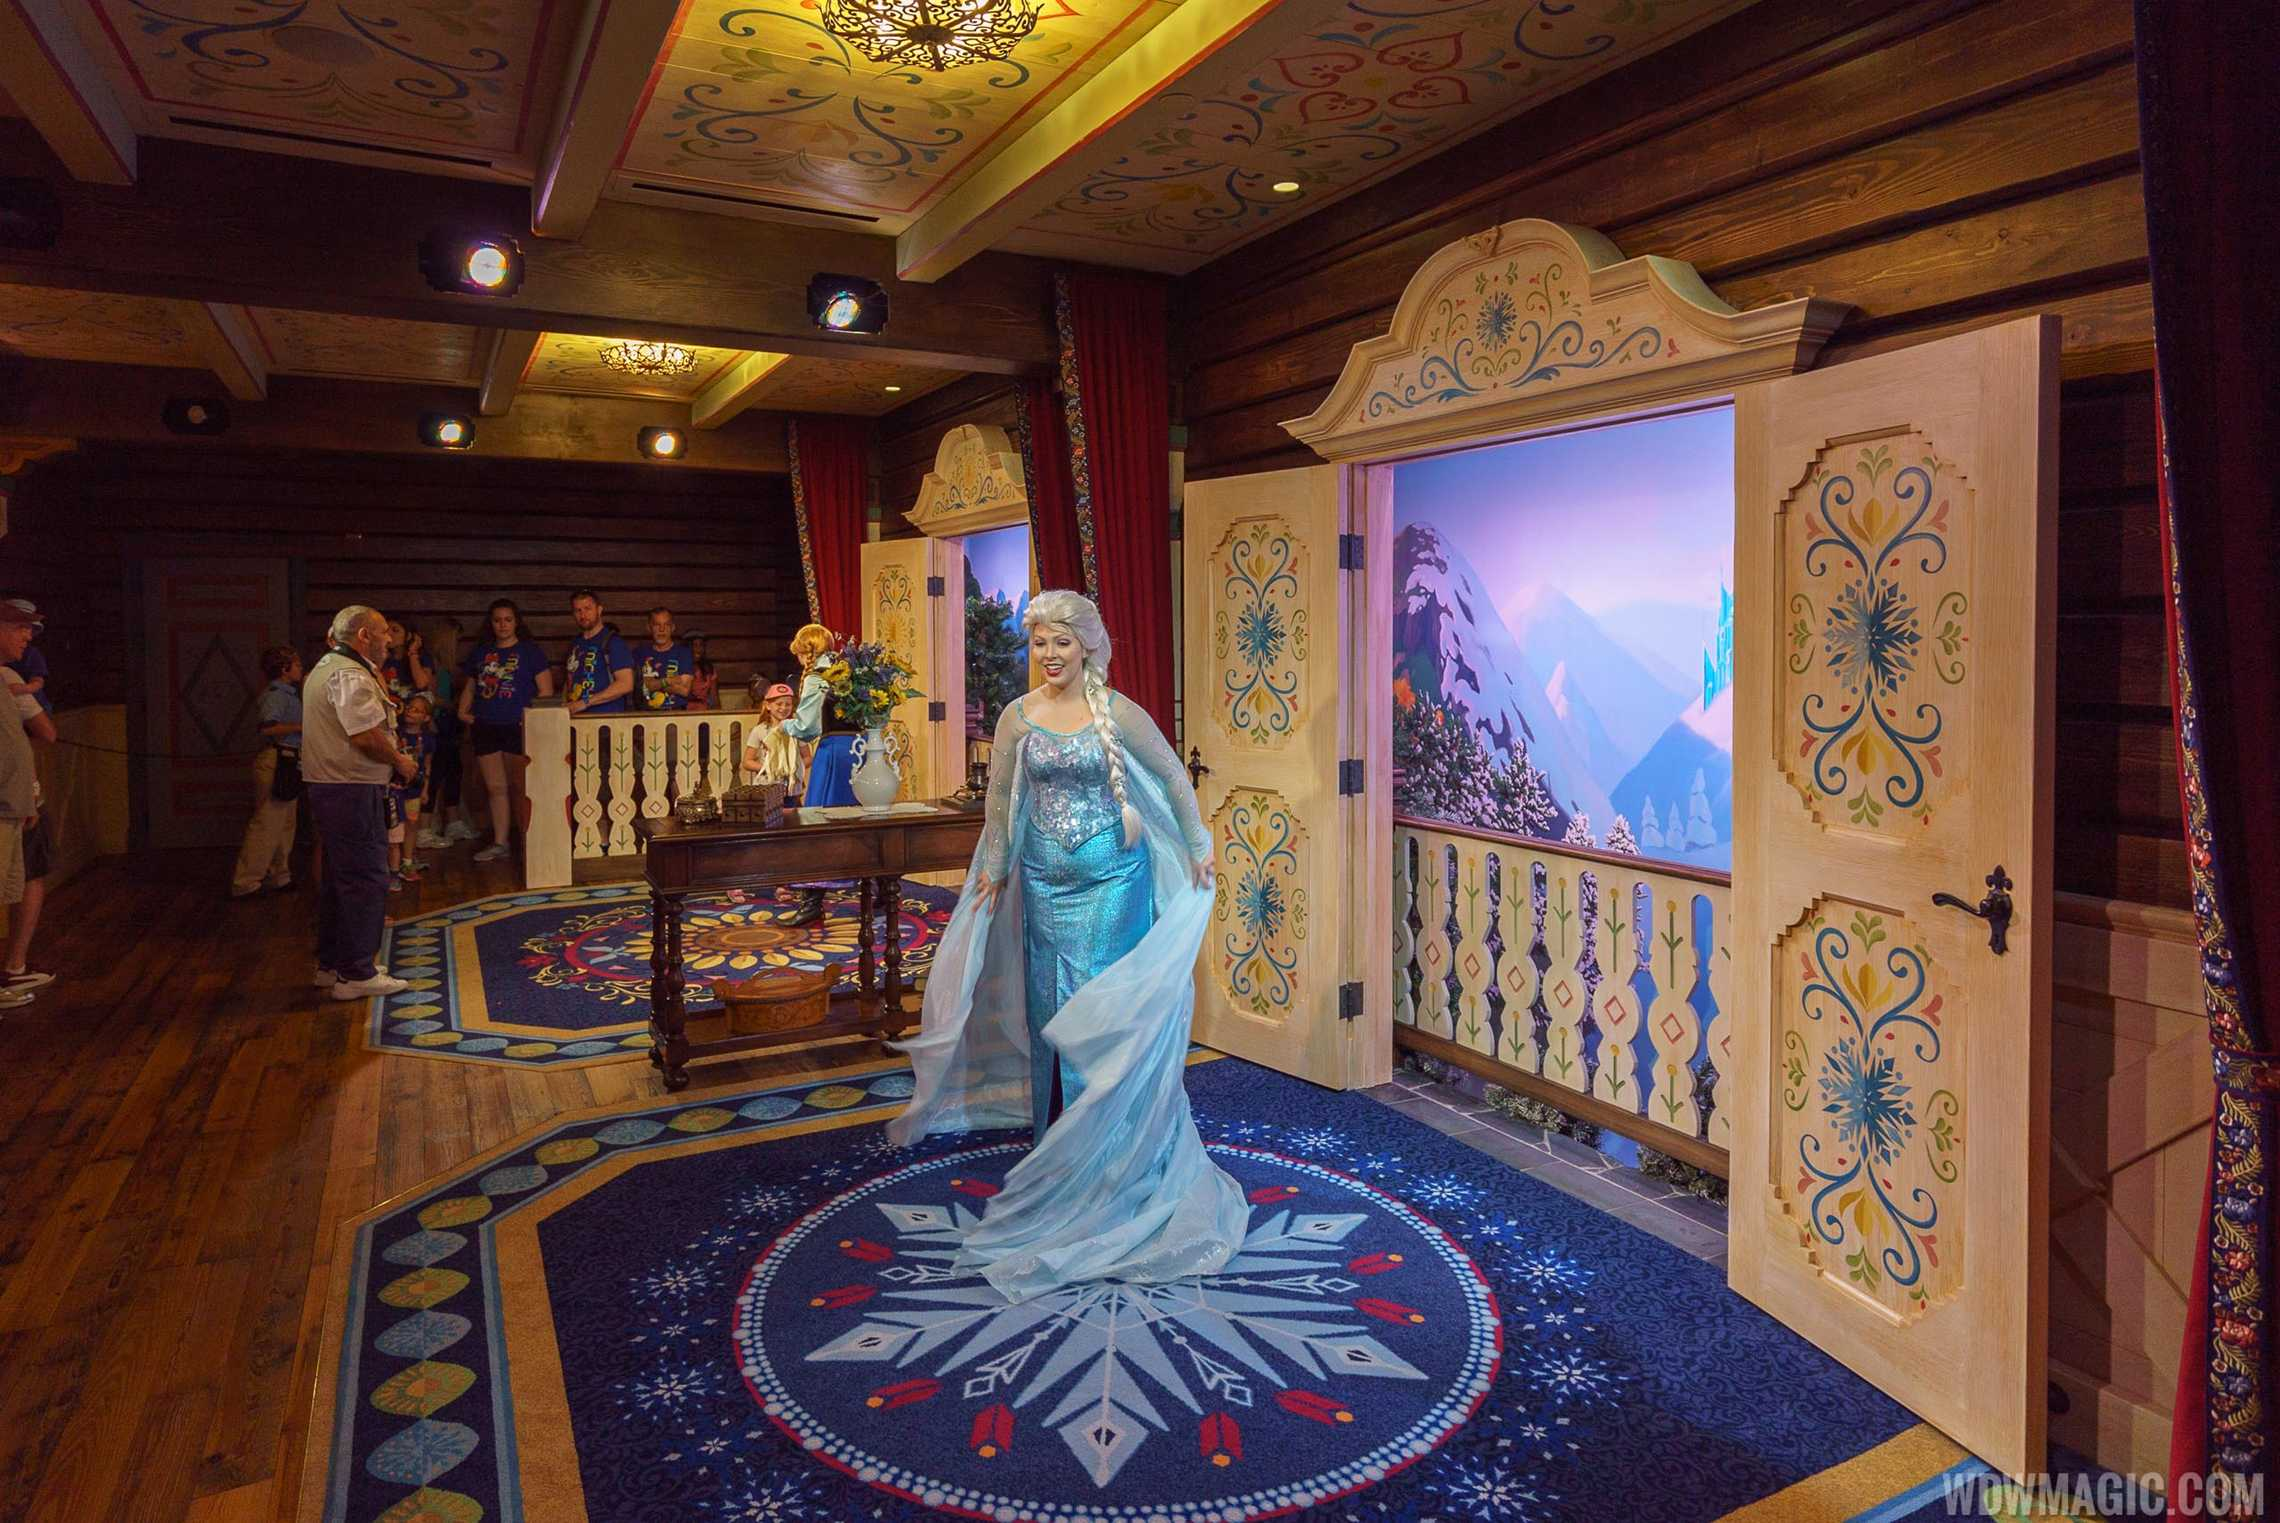 ... - Take a tour through the Royal Sommerhus at Epcots Norway Pavilion